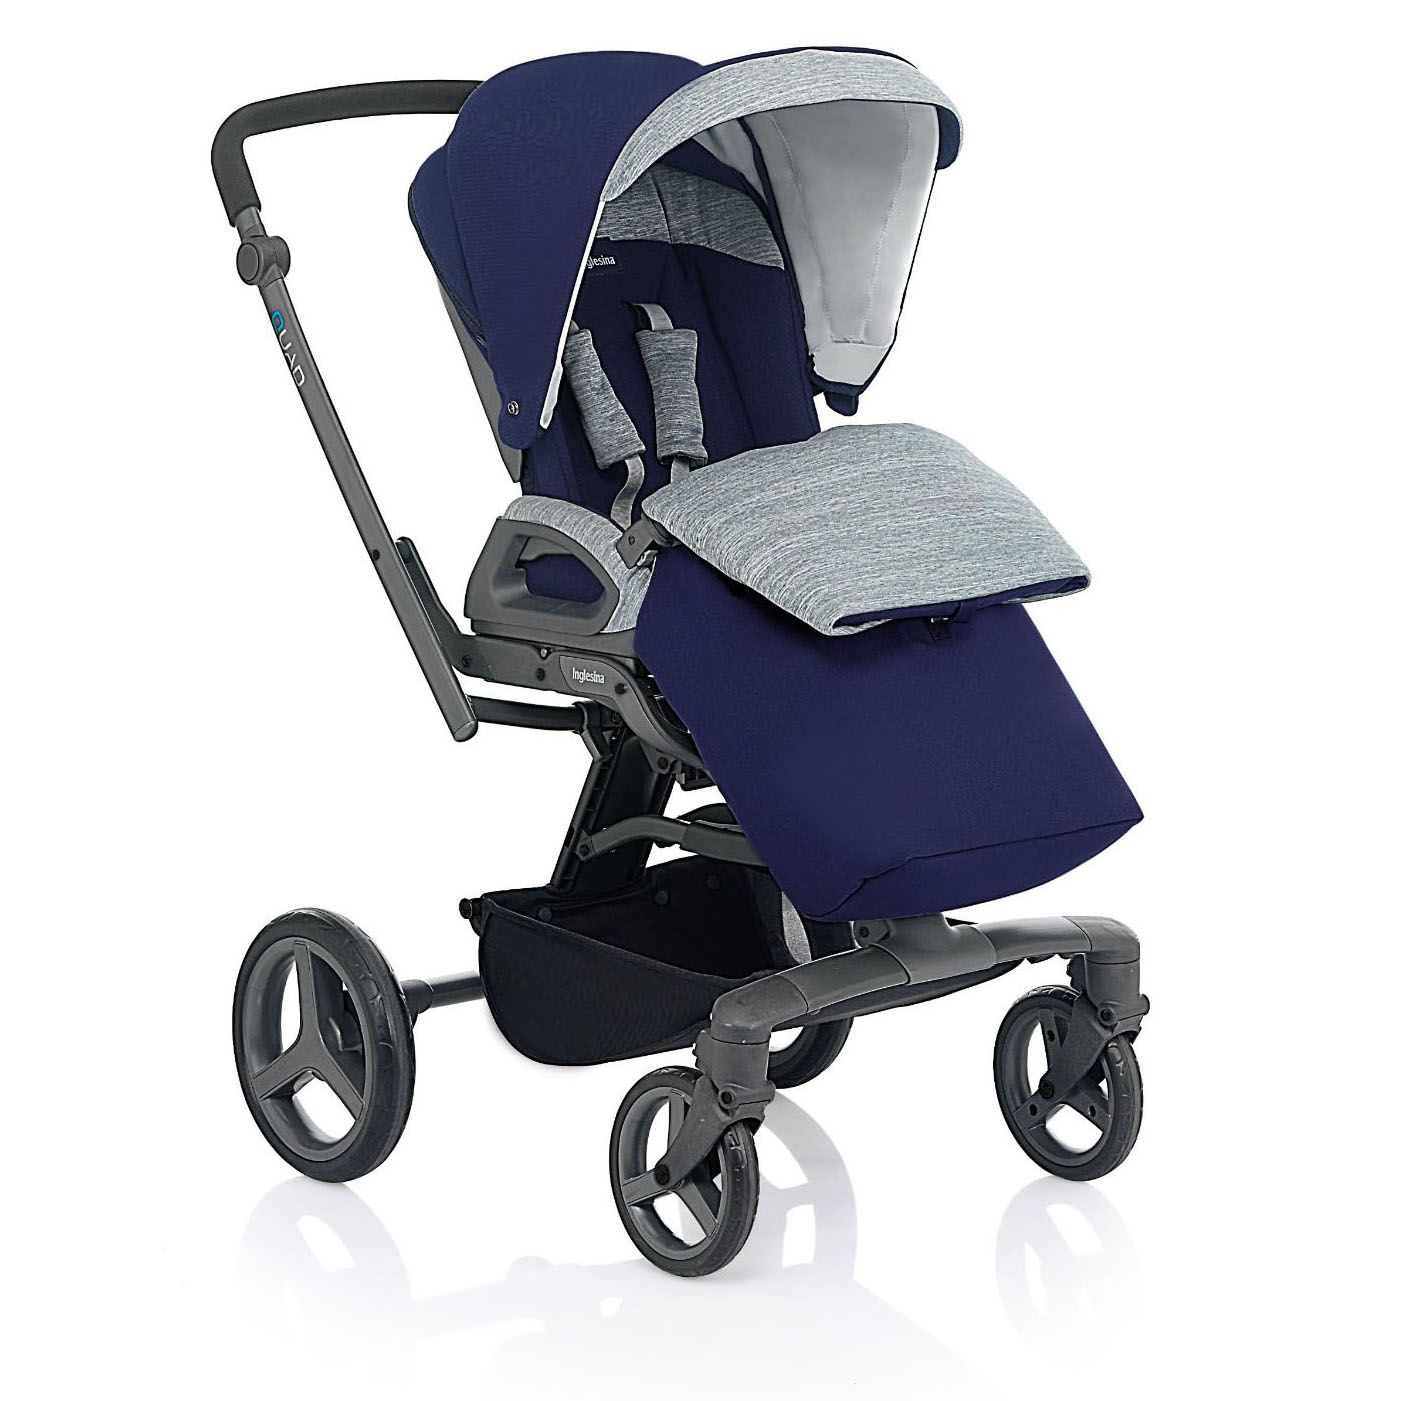 Jogging Stroller How To Use How To Use A Best Baby Stroller Stroller Brands Baby